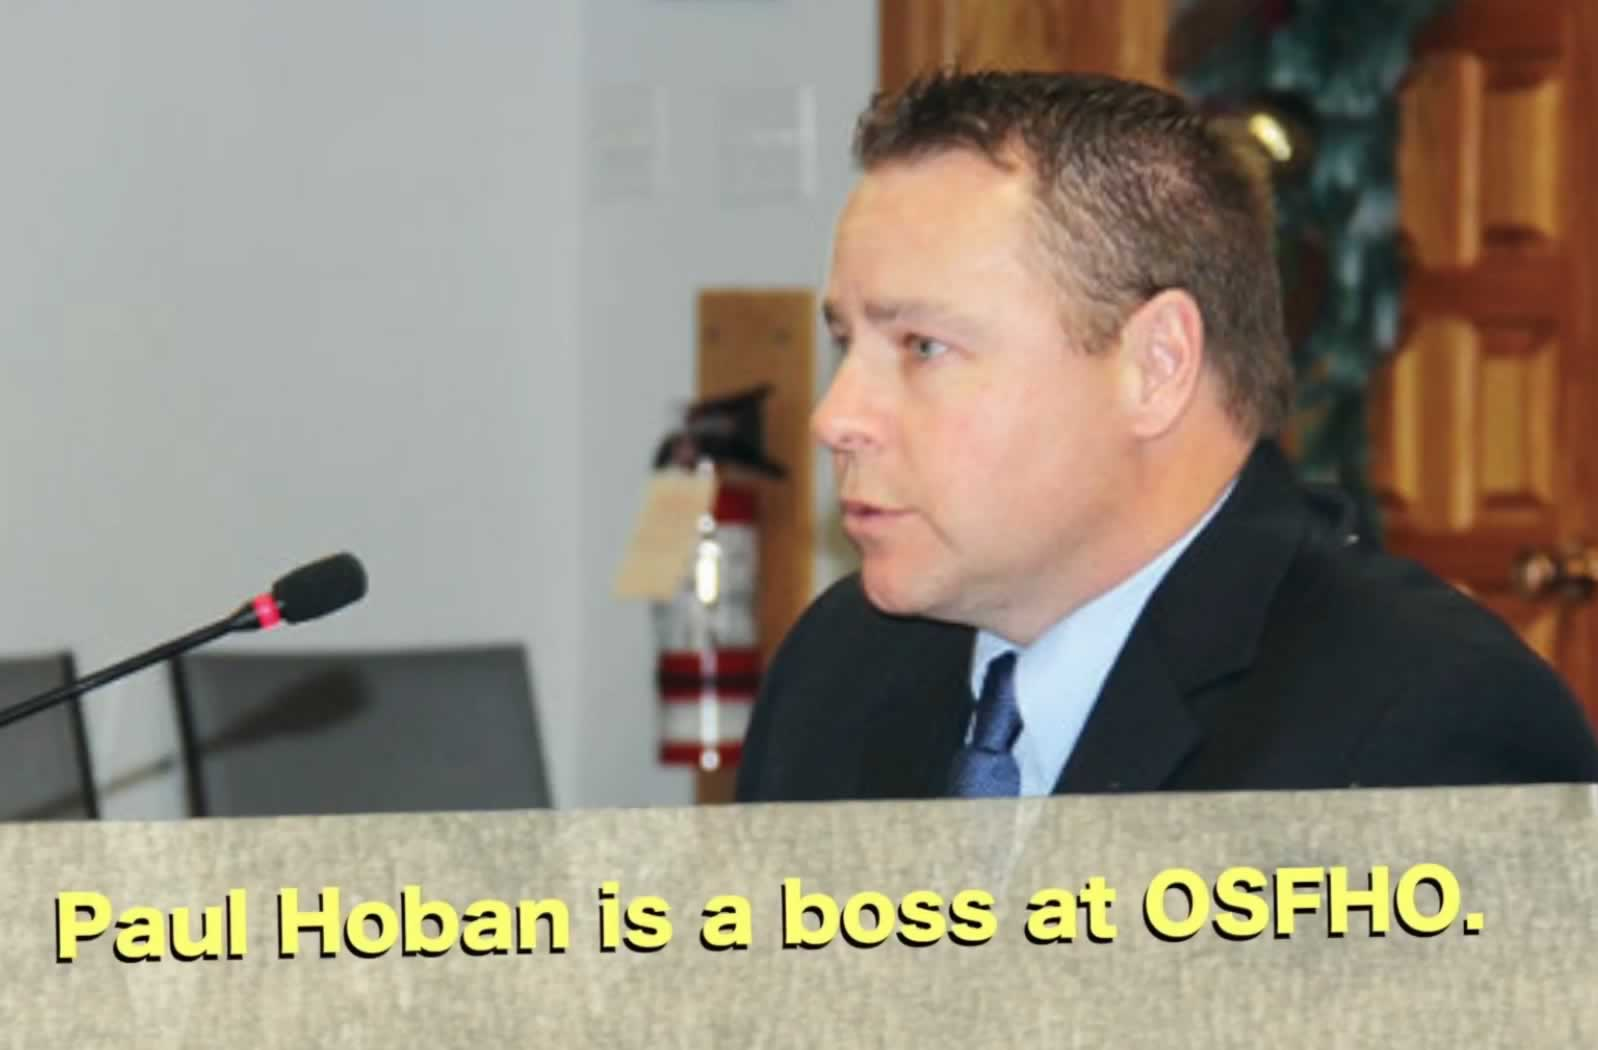 Paul Hoban is a boss at OSFHO